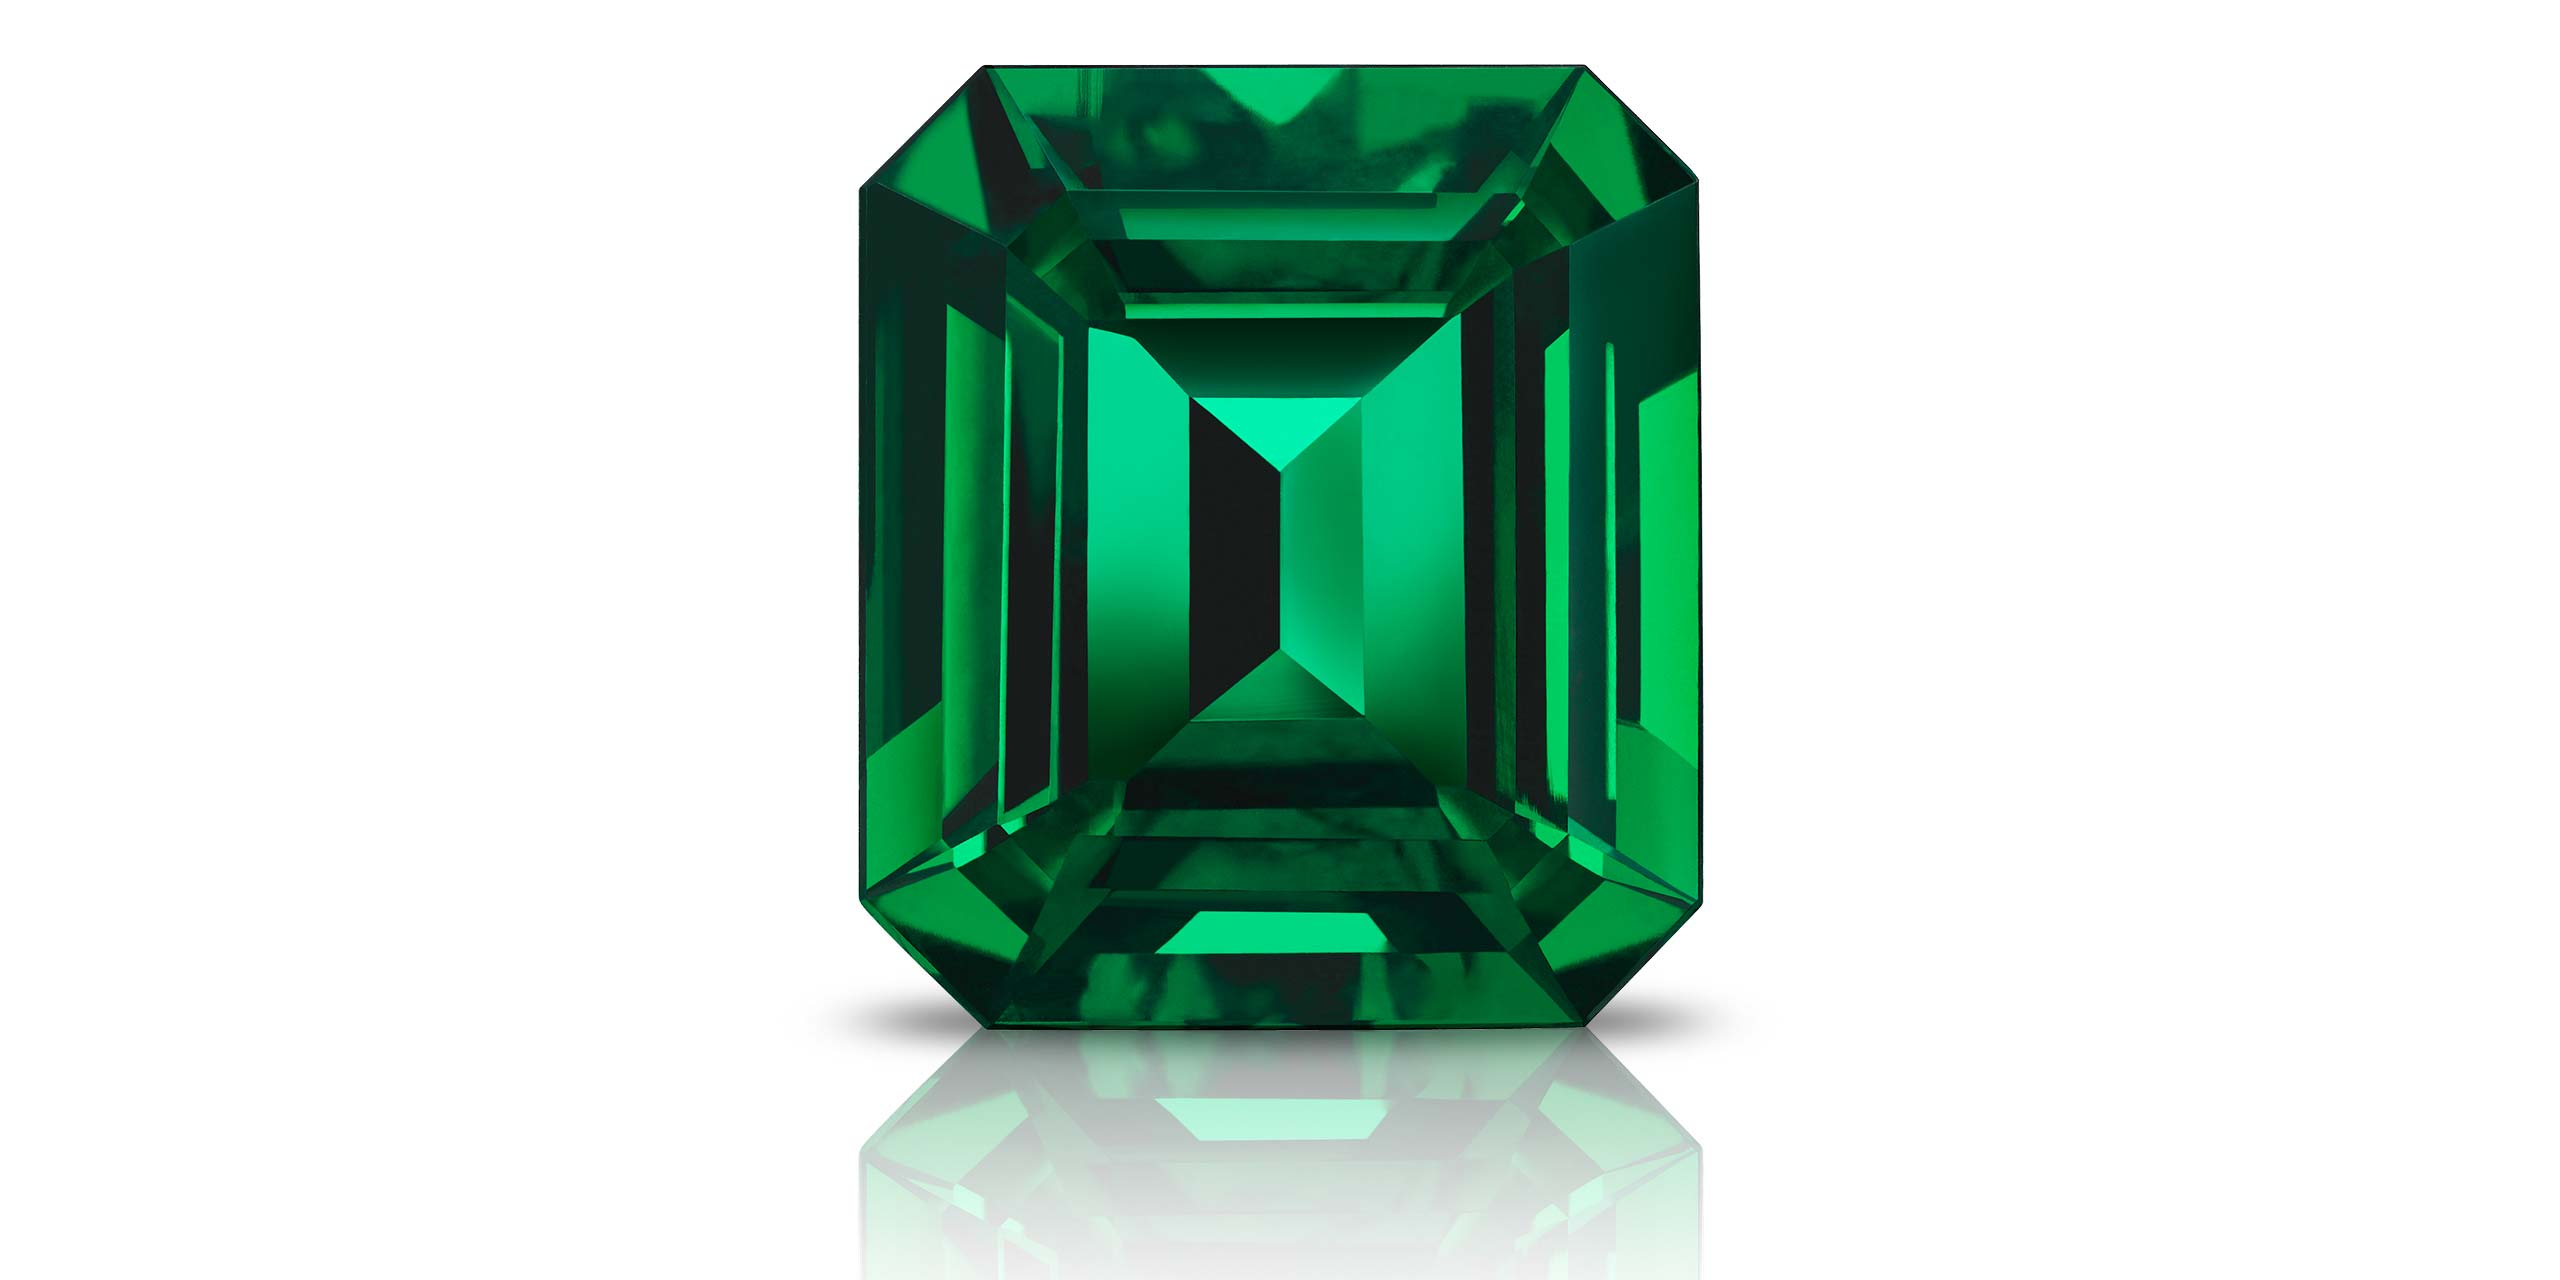 The meaning and symbolism of the word - Emerald